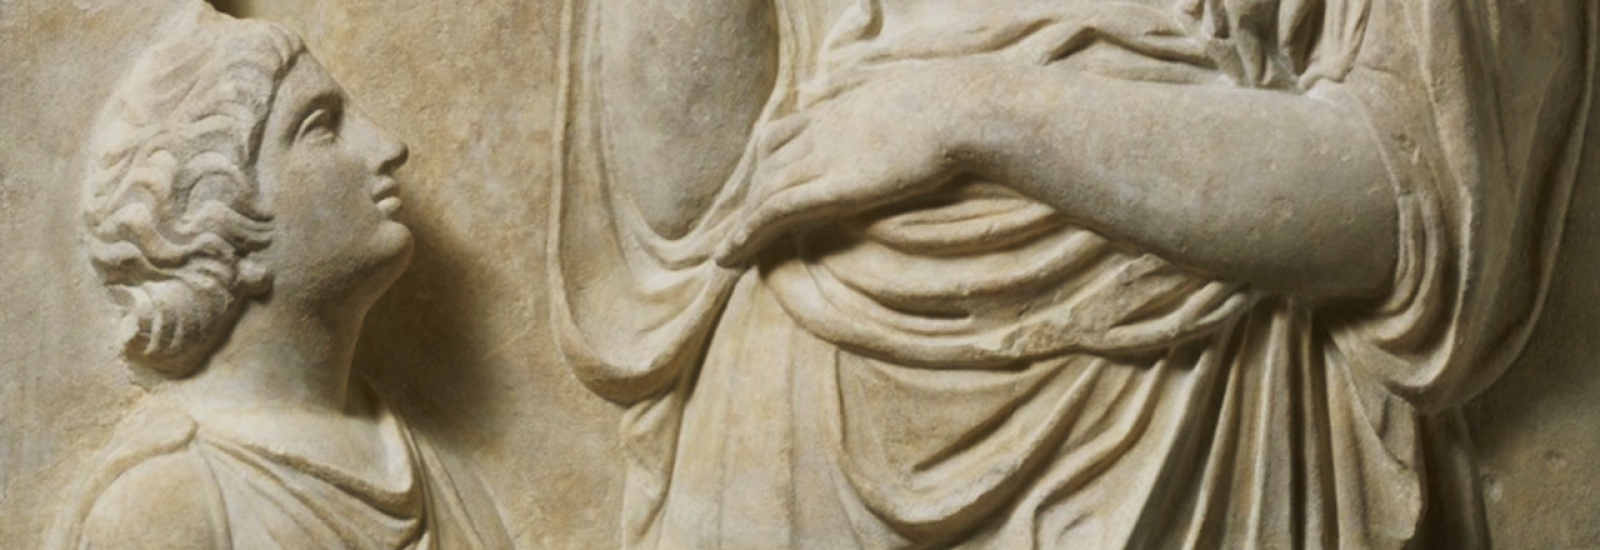 Greek carved marble relief showing a servant looking up at a woman